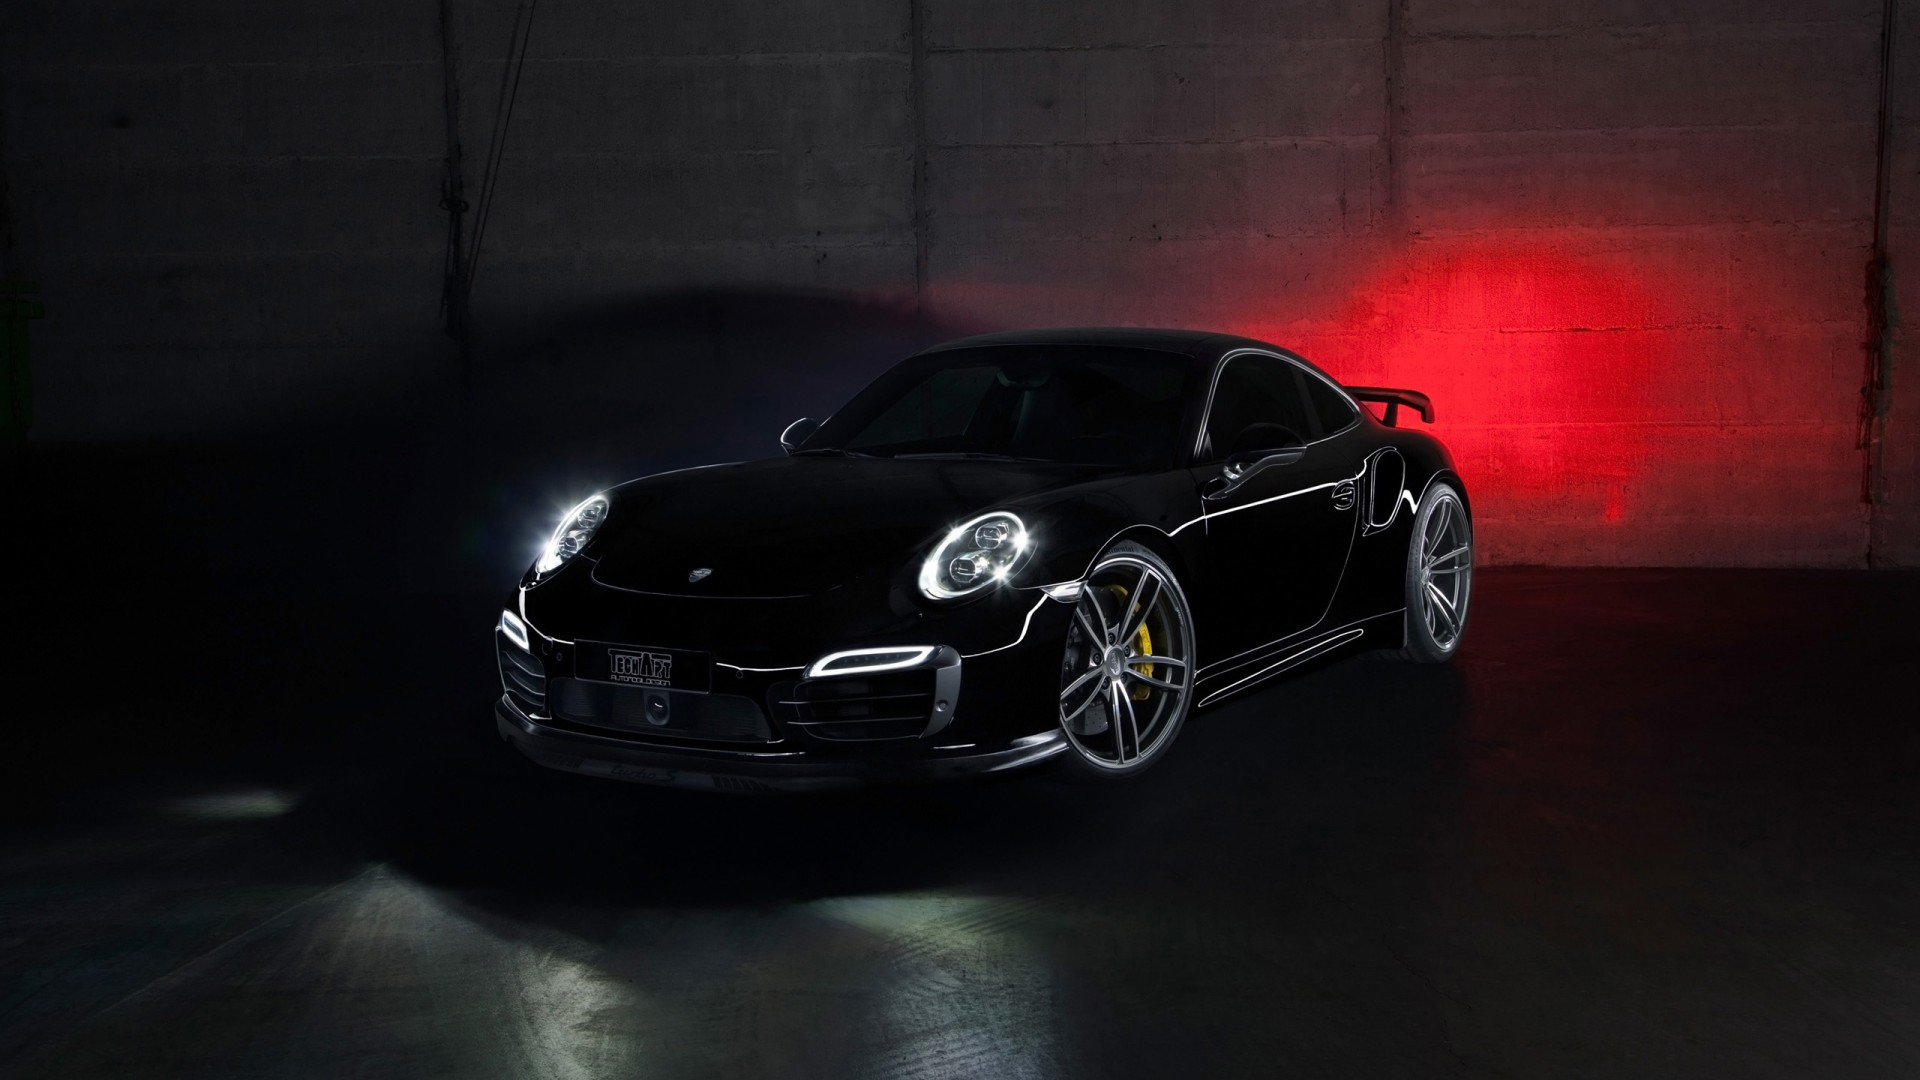 2013 TechArt Porsche 911 Turbo Wallpaper